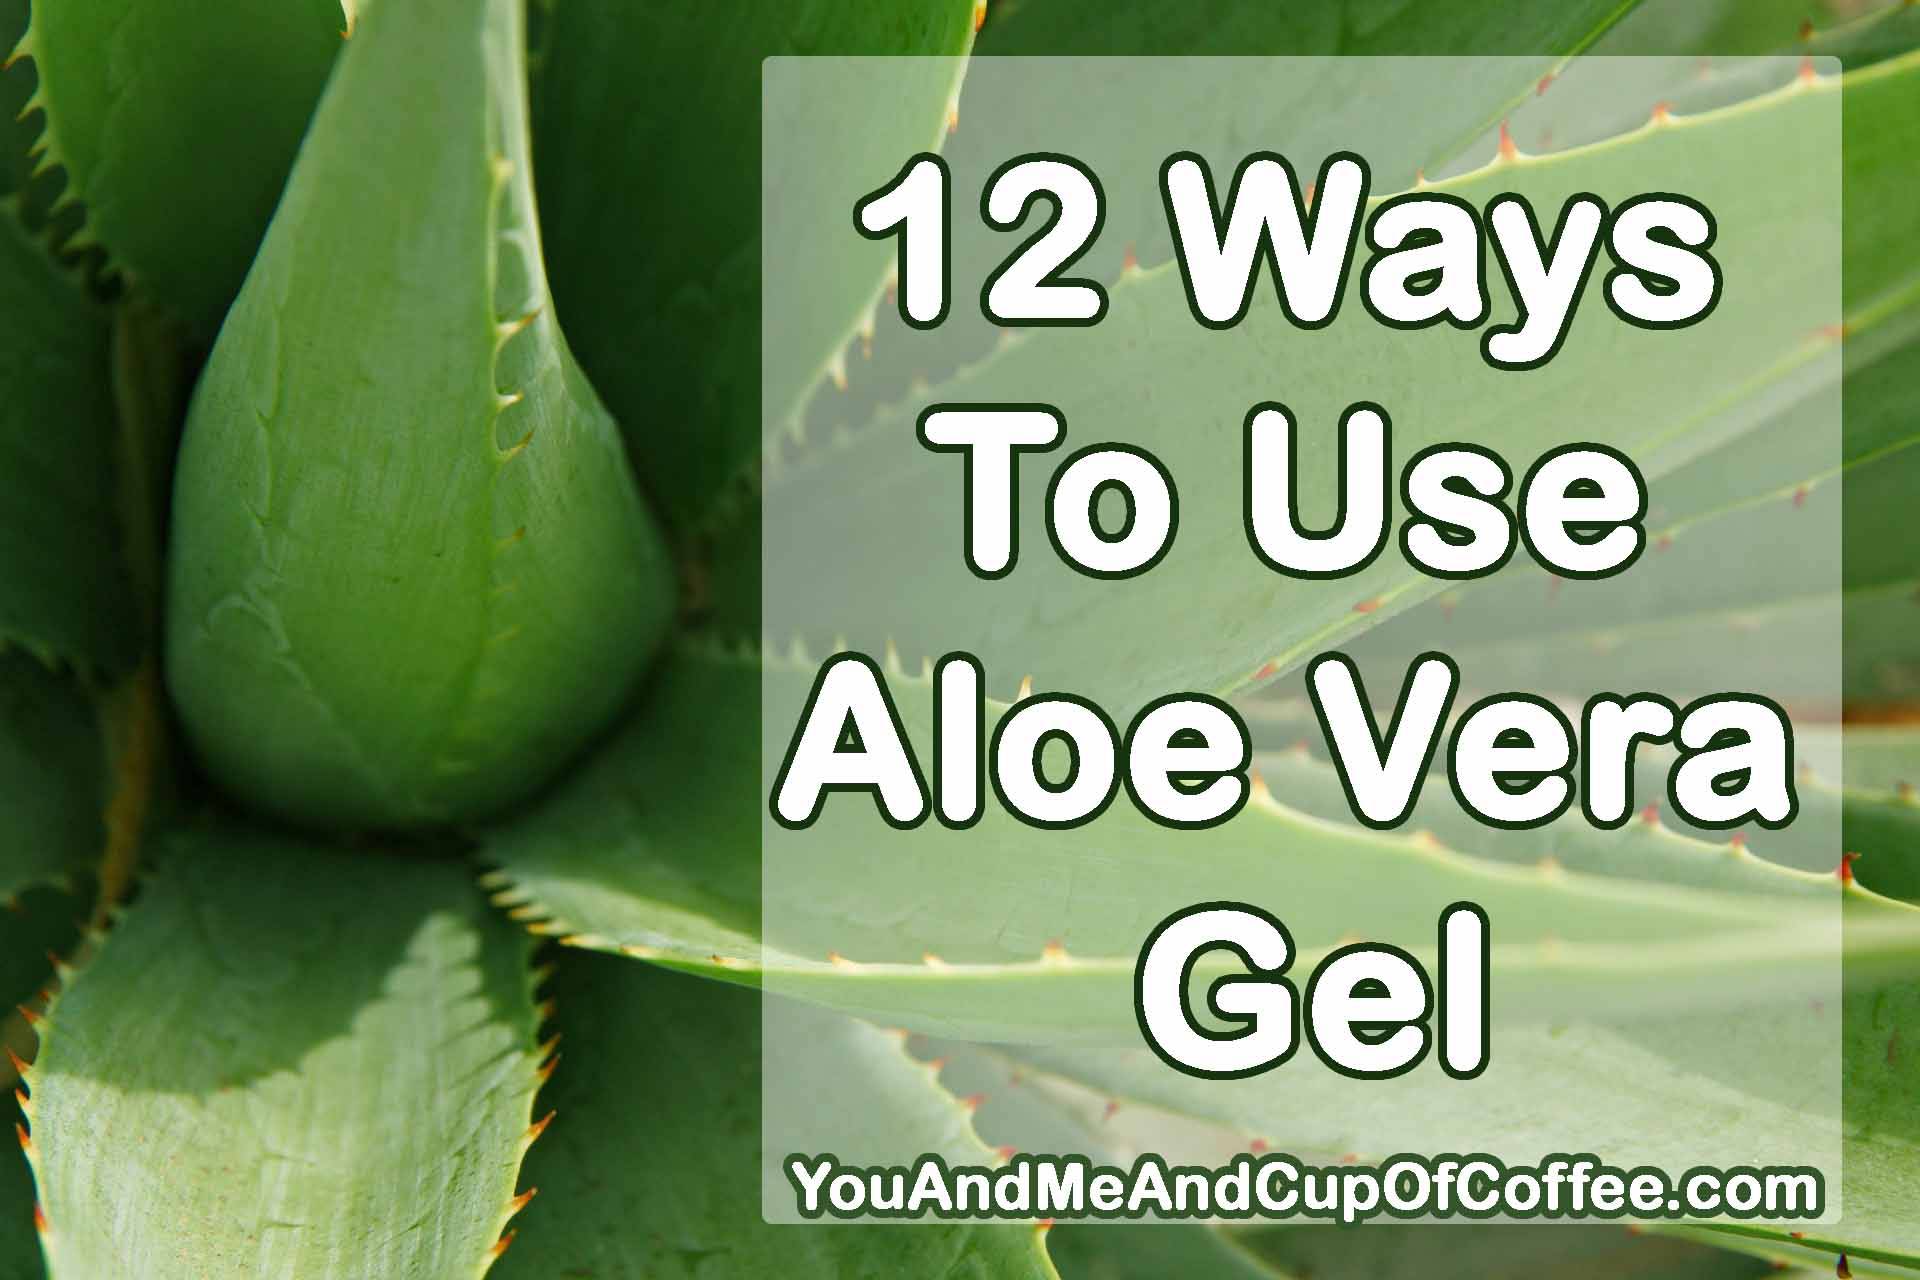 12 Common And Not So Common Ways To Use Aloe Vera Gel You And Me And Cup Of Coffee